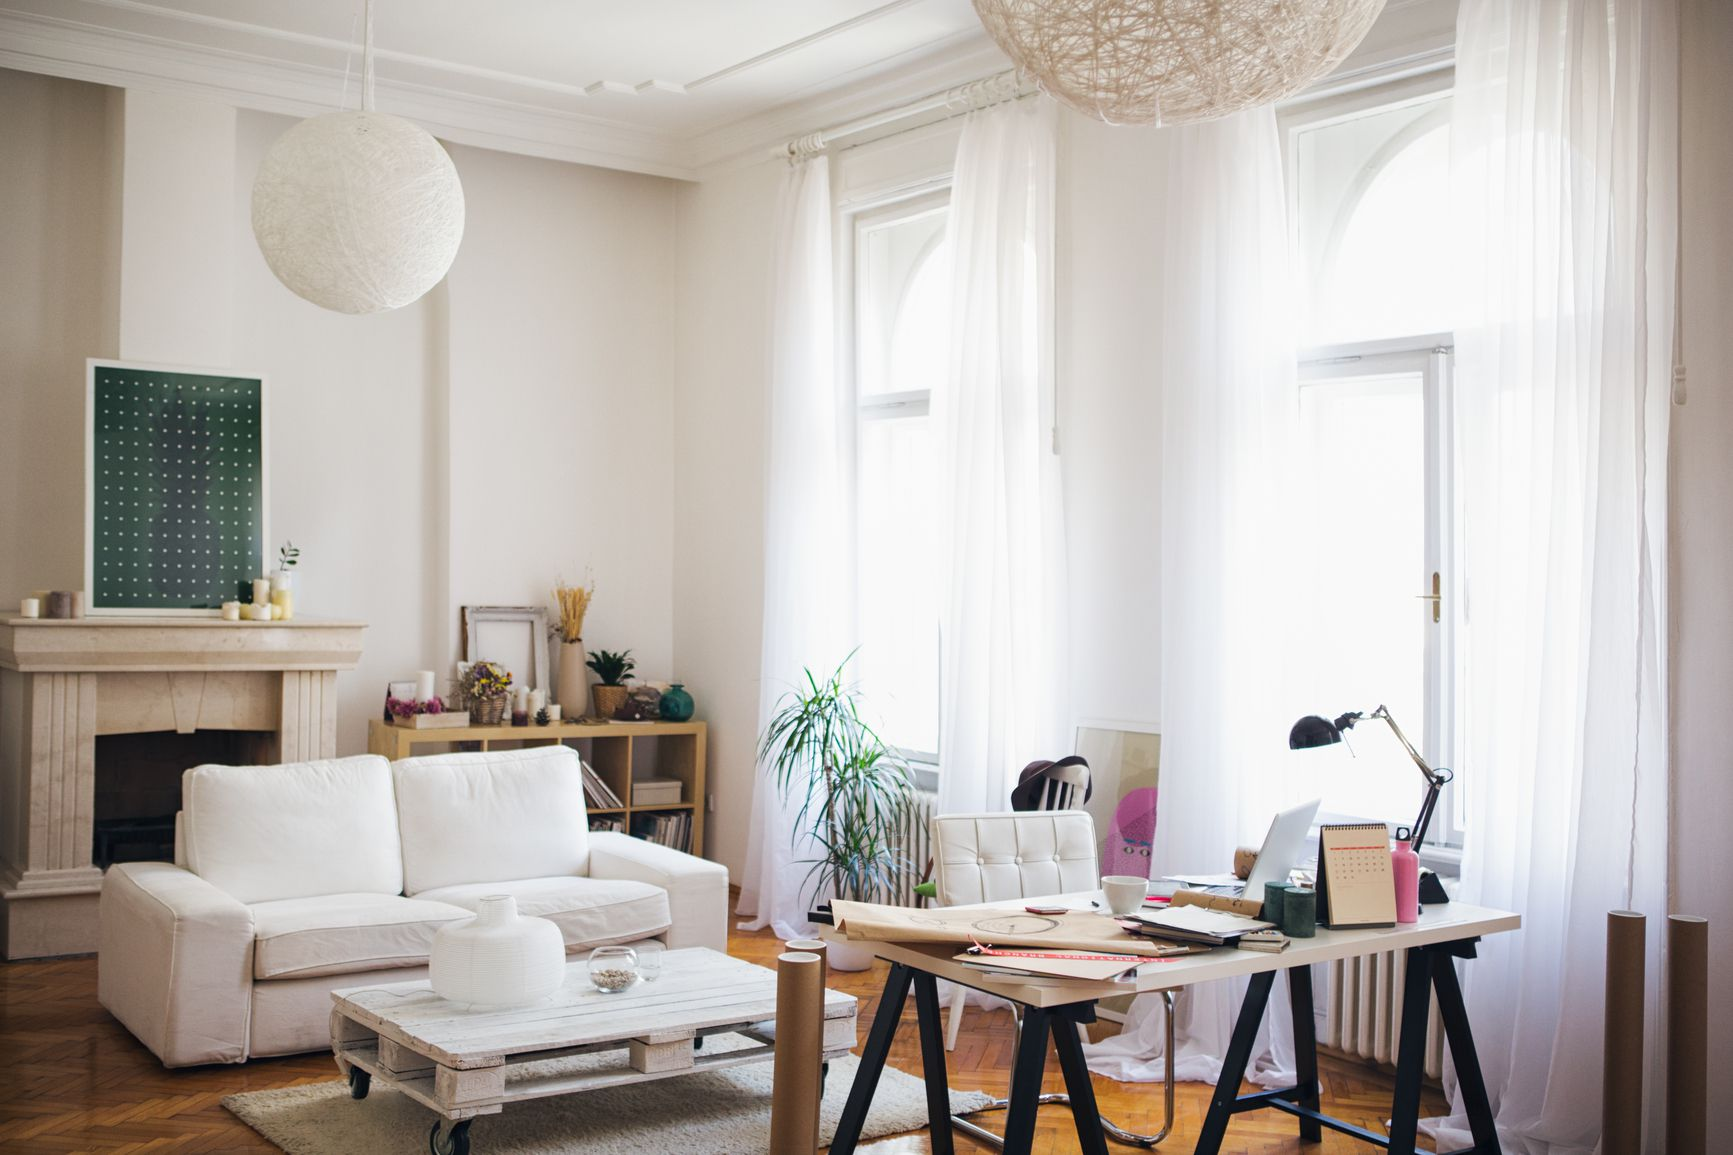 7 Decor Mistakes To Avoid In A Small Home: 5 Organizing Mistakes To Avoid With The KonMari Method